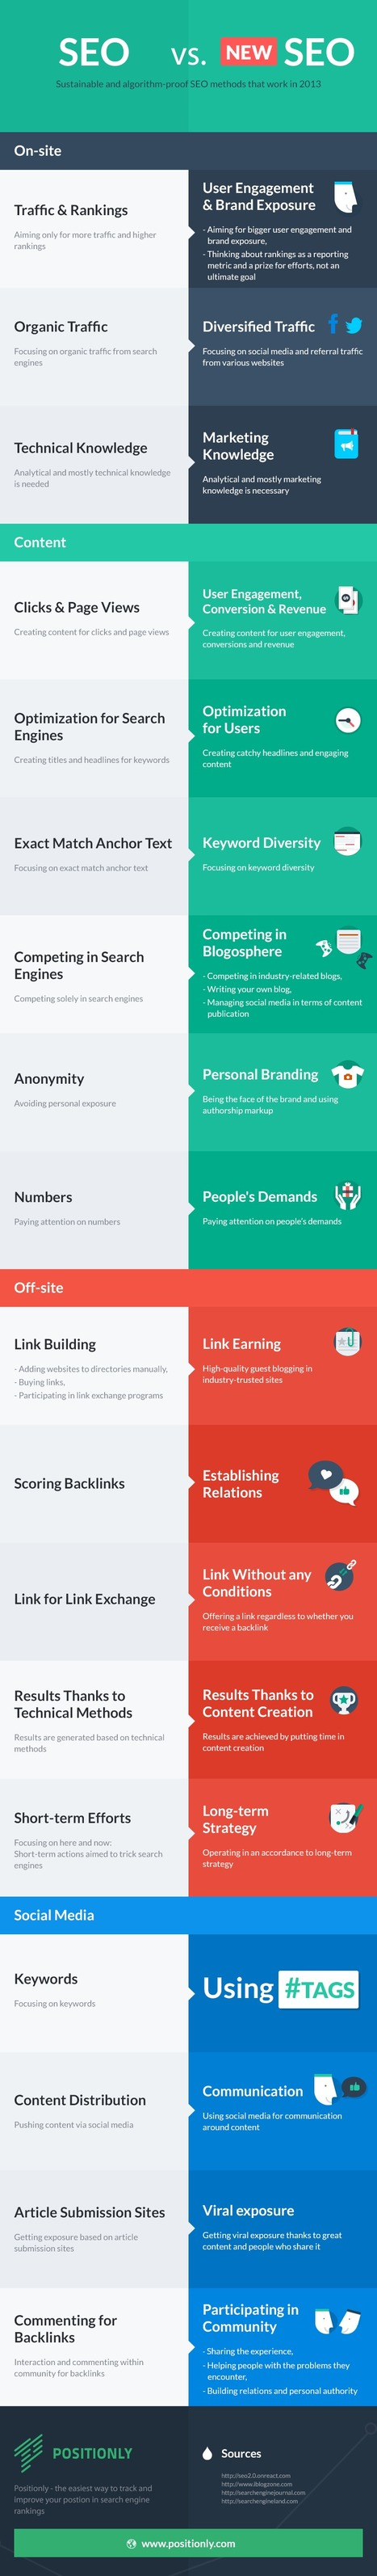 Social Media & Sustainable SEO: Infographic | visualizing social media | Scoop.it